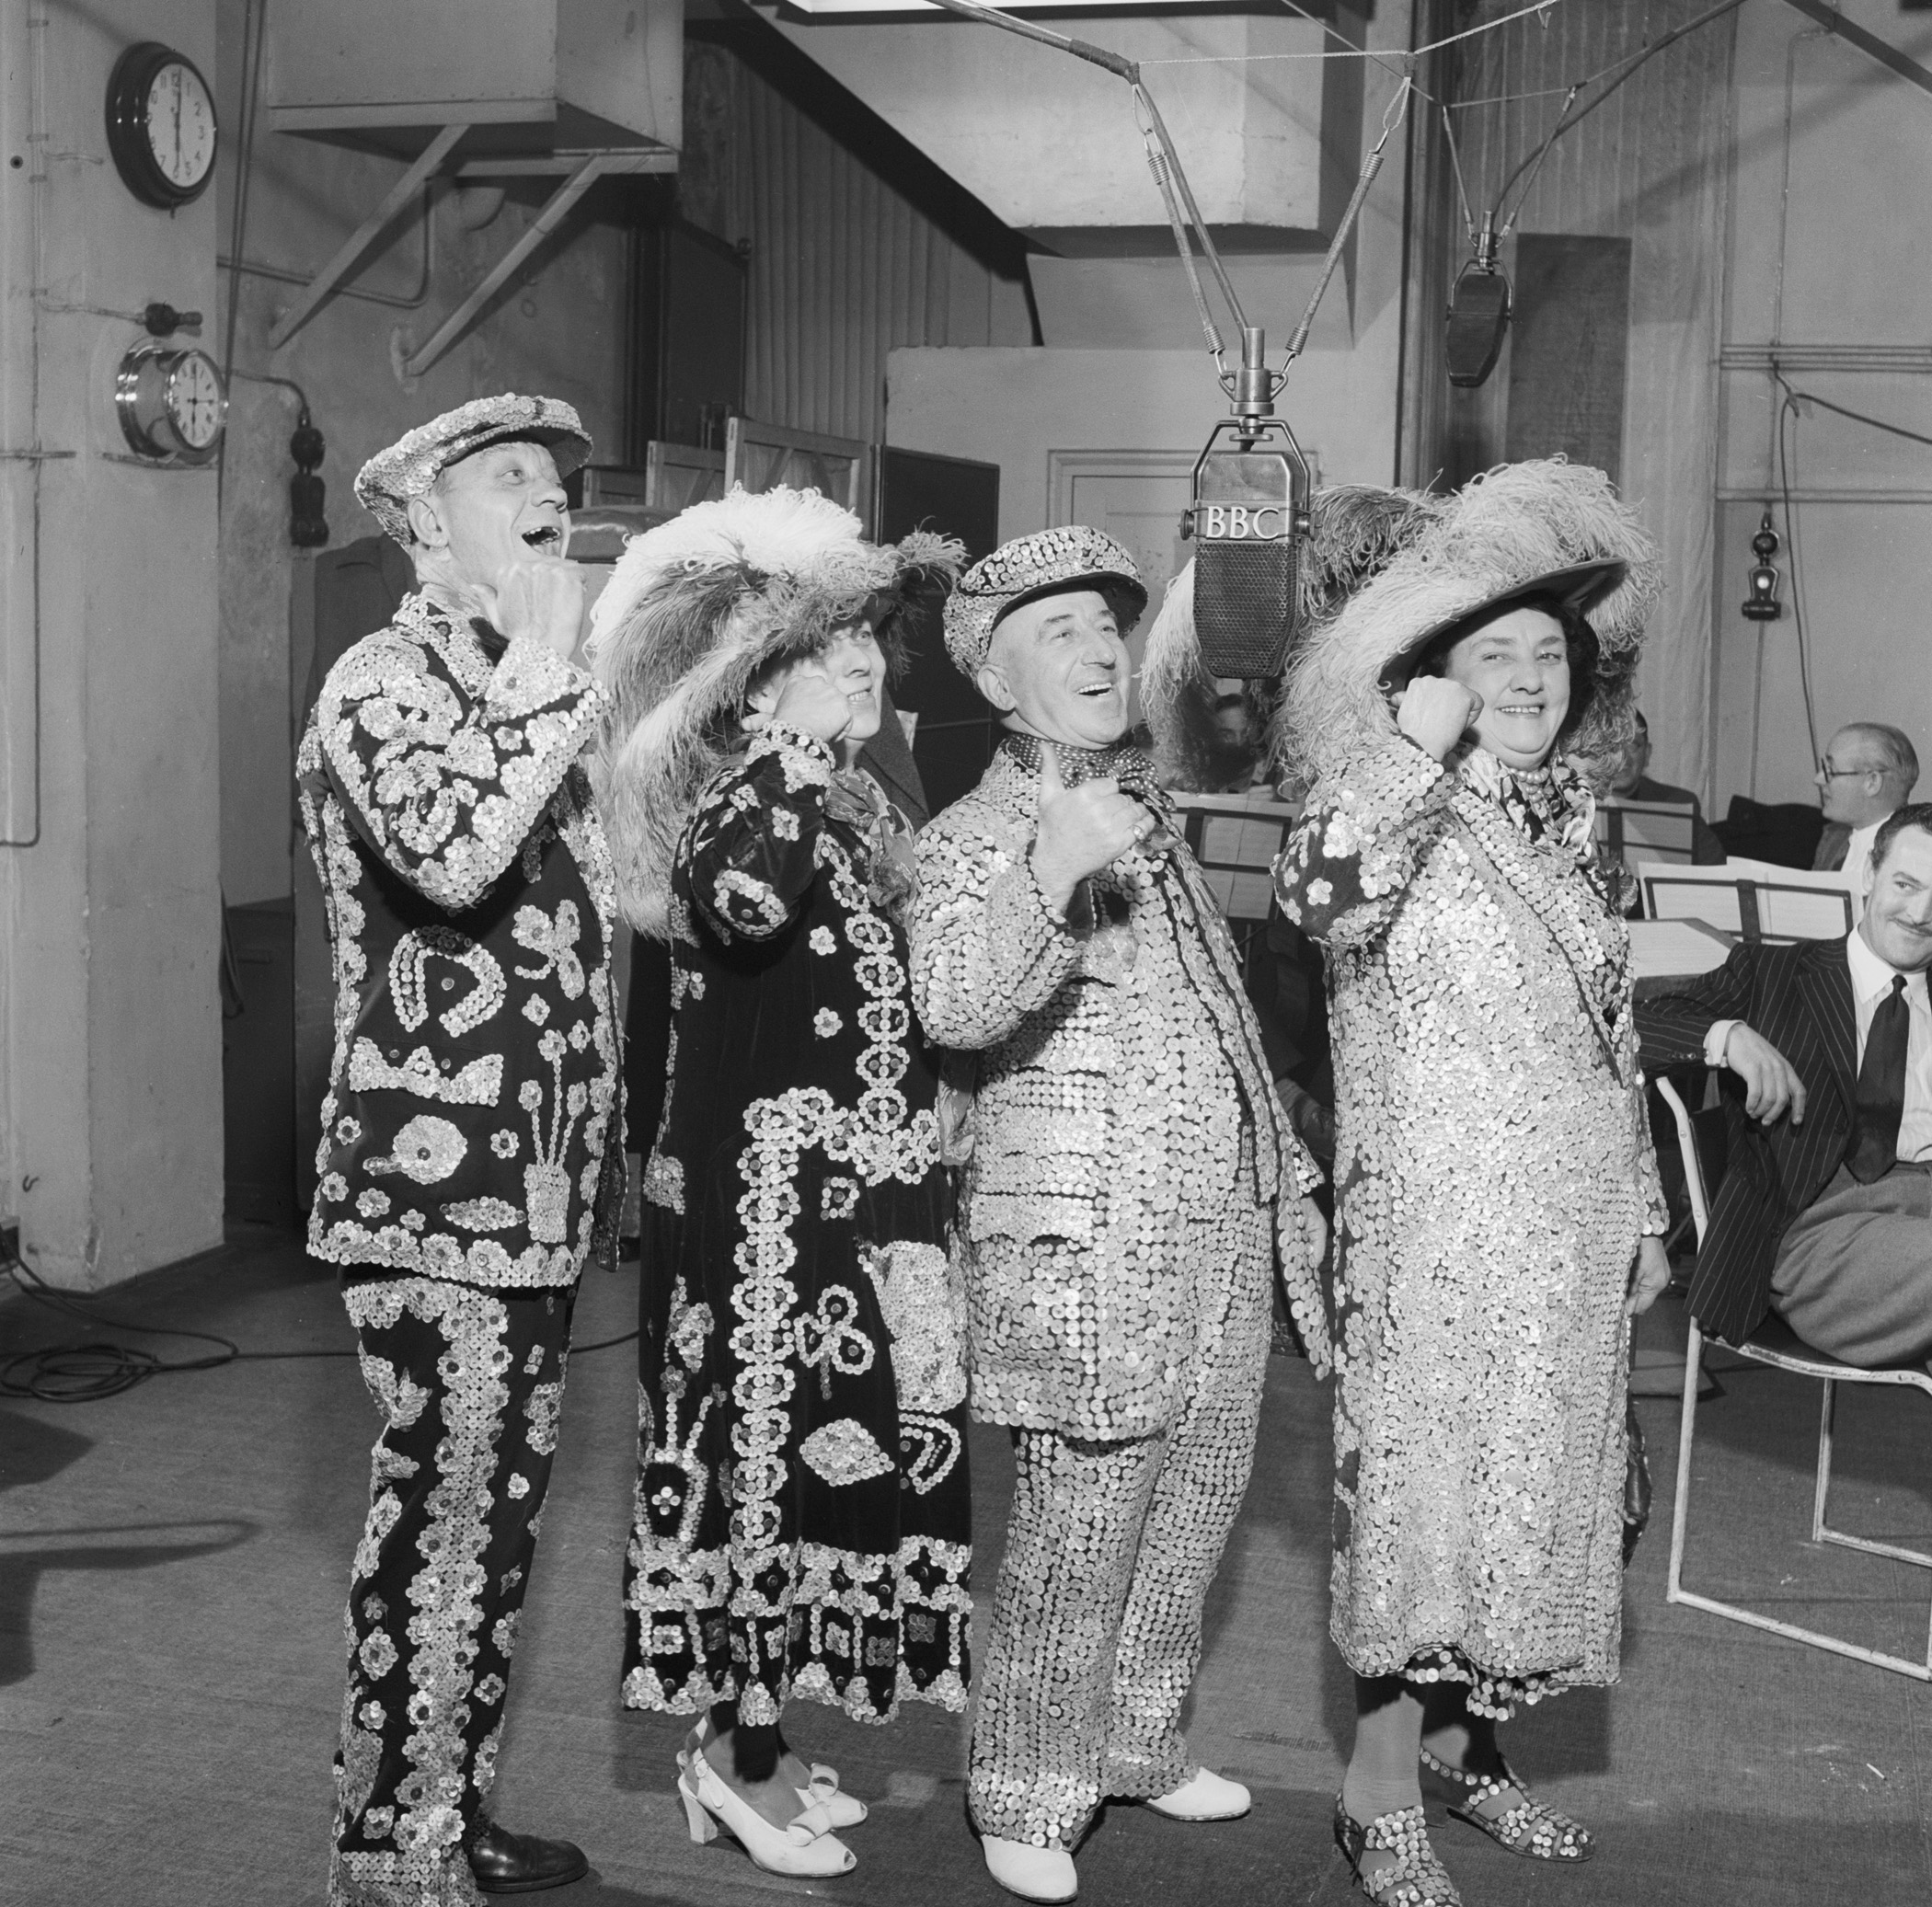 Pearly Kings and Queens in the 1940s